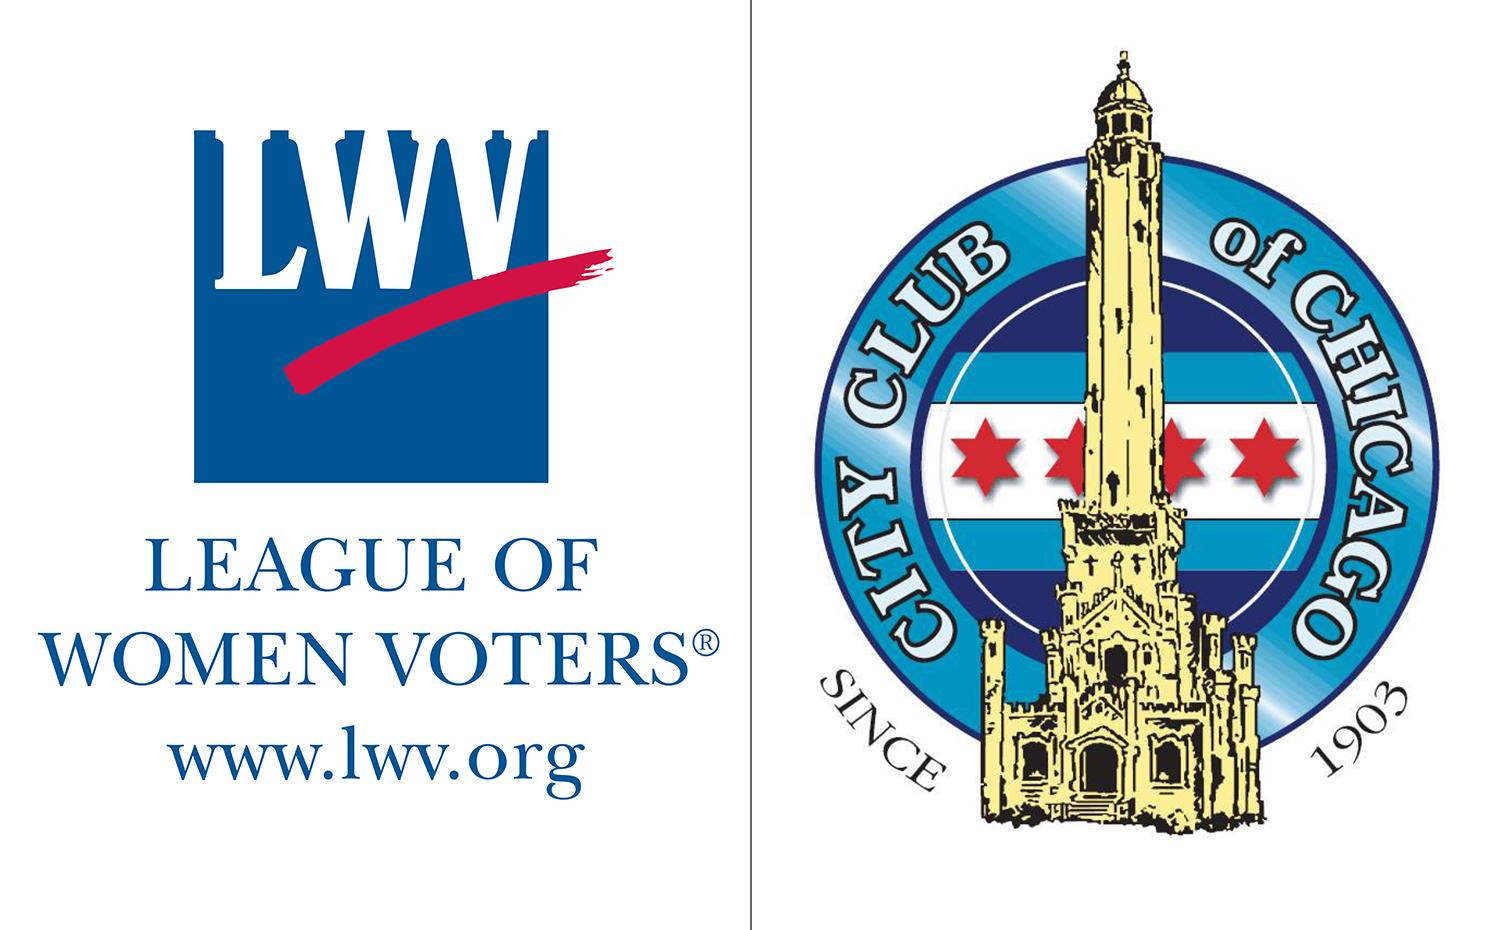 Candidate Free Time is underwritten in part by the League of Women Voters of Cook County and the City Club of Chicago